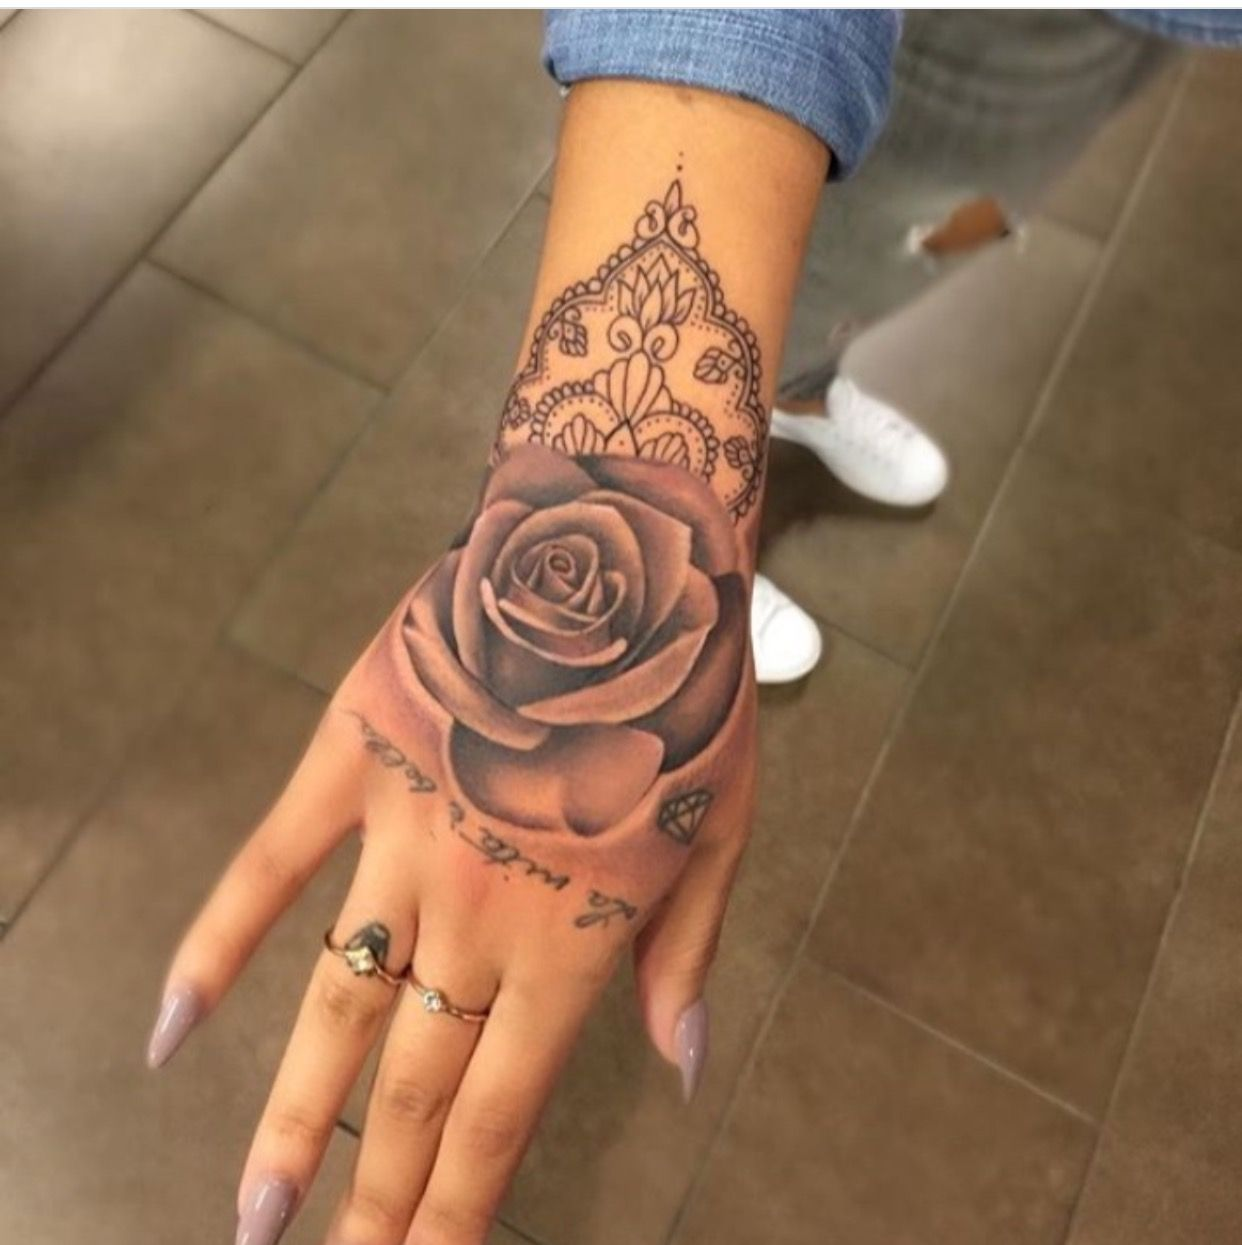 Follow Me Gottalovedesss If You Want More Pins Hand Tattoos For Women Tattoos Tattoos For Women